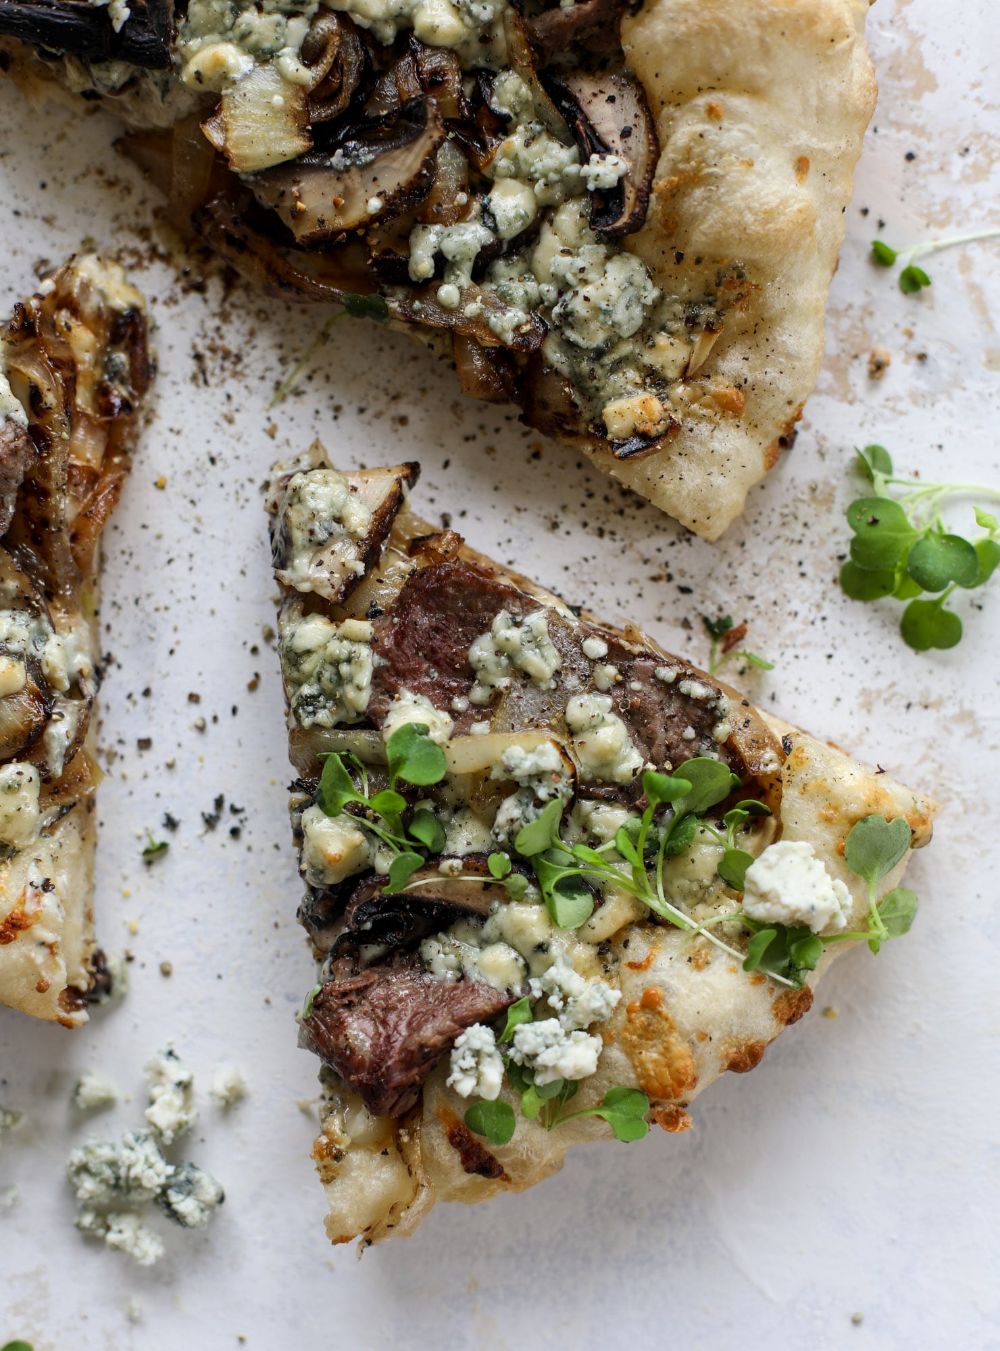 Grilled Steakhouse Pizza - Grilled Steak Pizza with Gorgonzola, #Gorgonzola #Grilled #Pizza #steak #Steakhouse